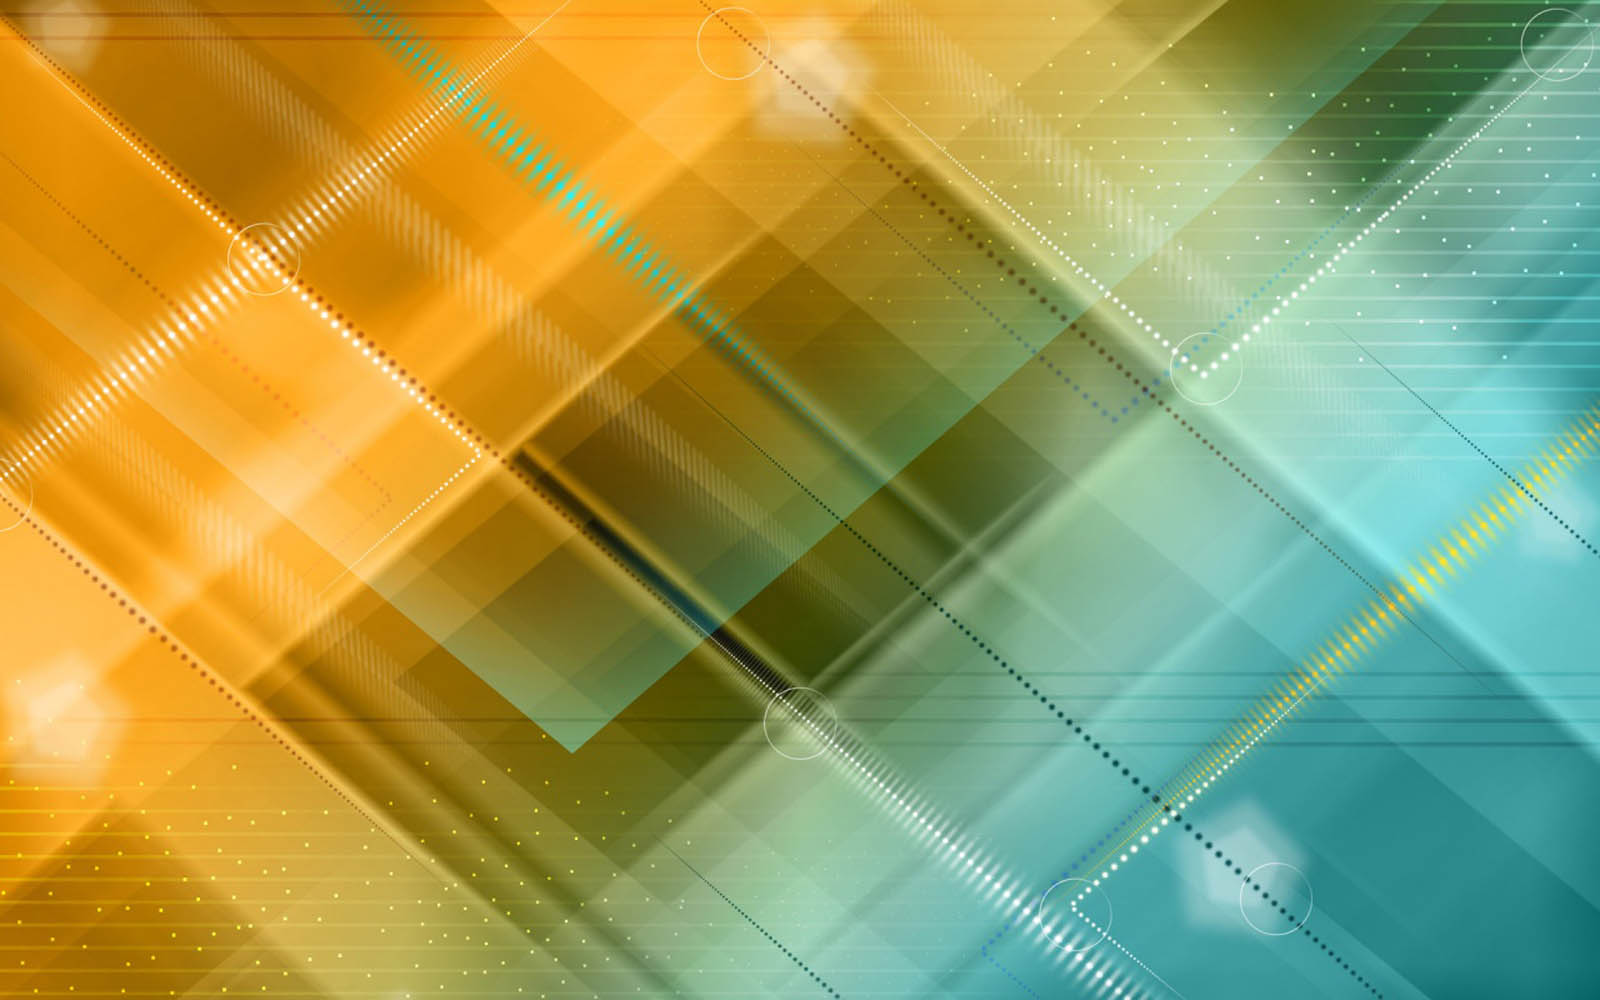 backgrounds wallpaper abstract - photo #2